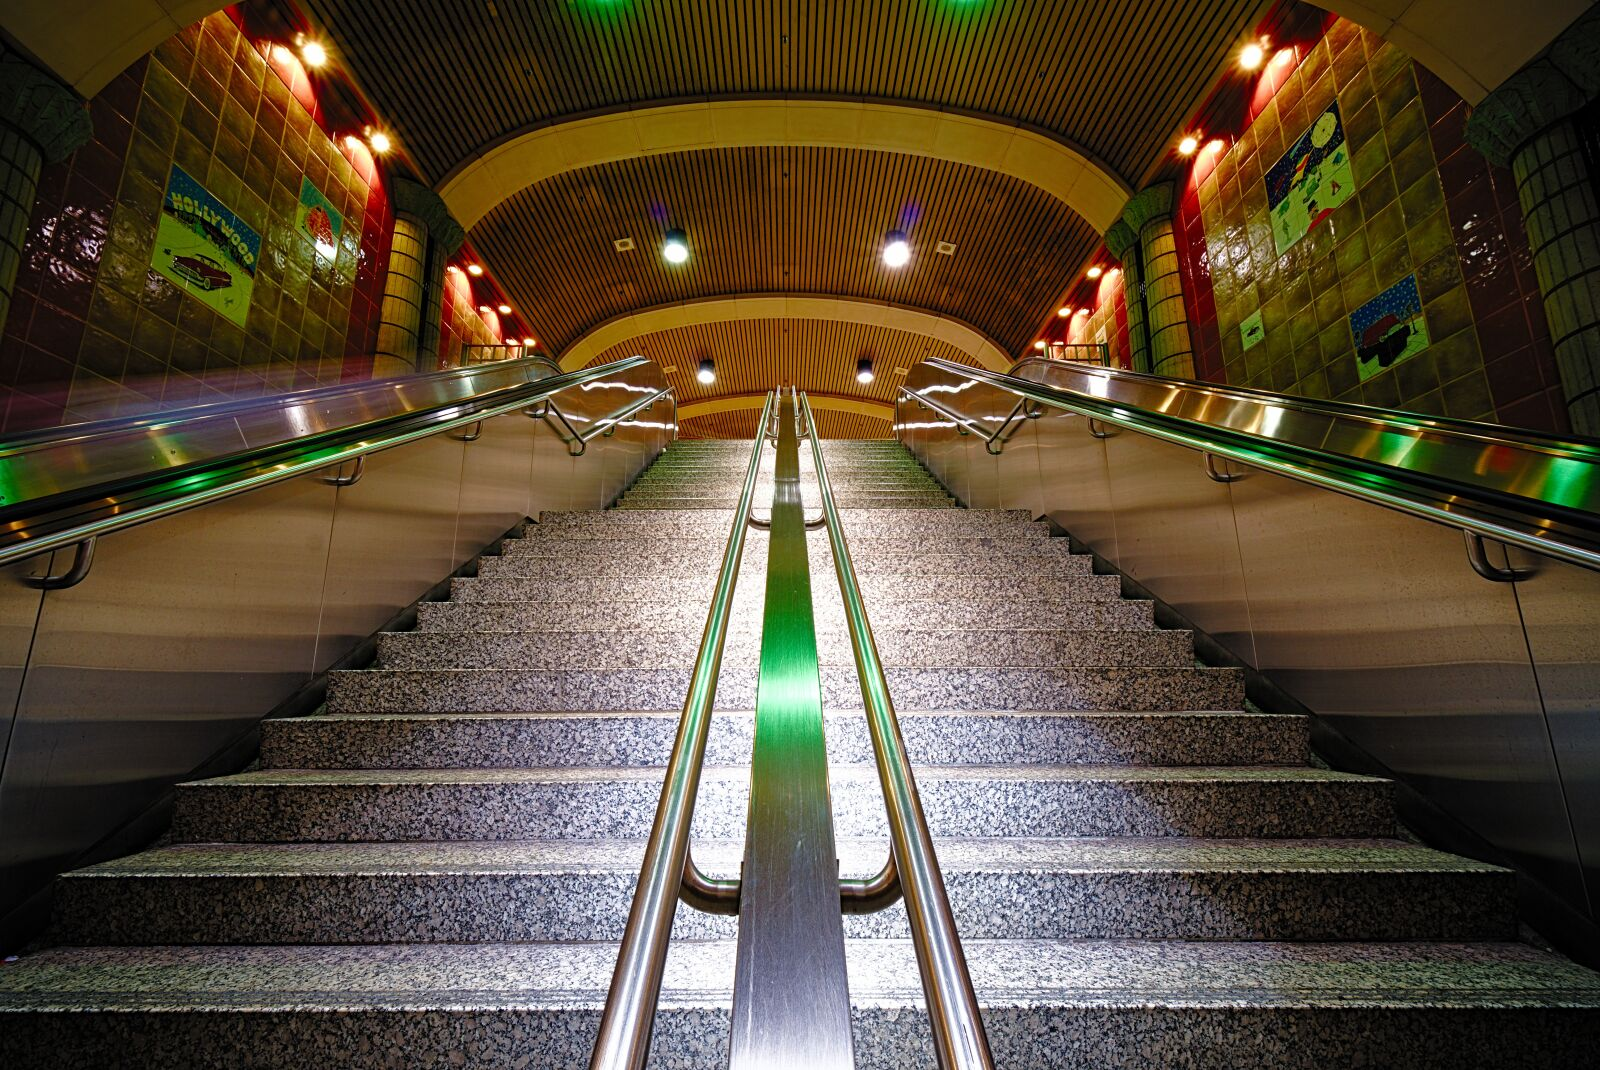 """Sony a6300 sample photo. """"Stairs, underground, light"""" photography"""